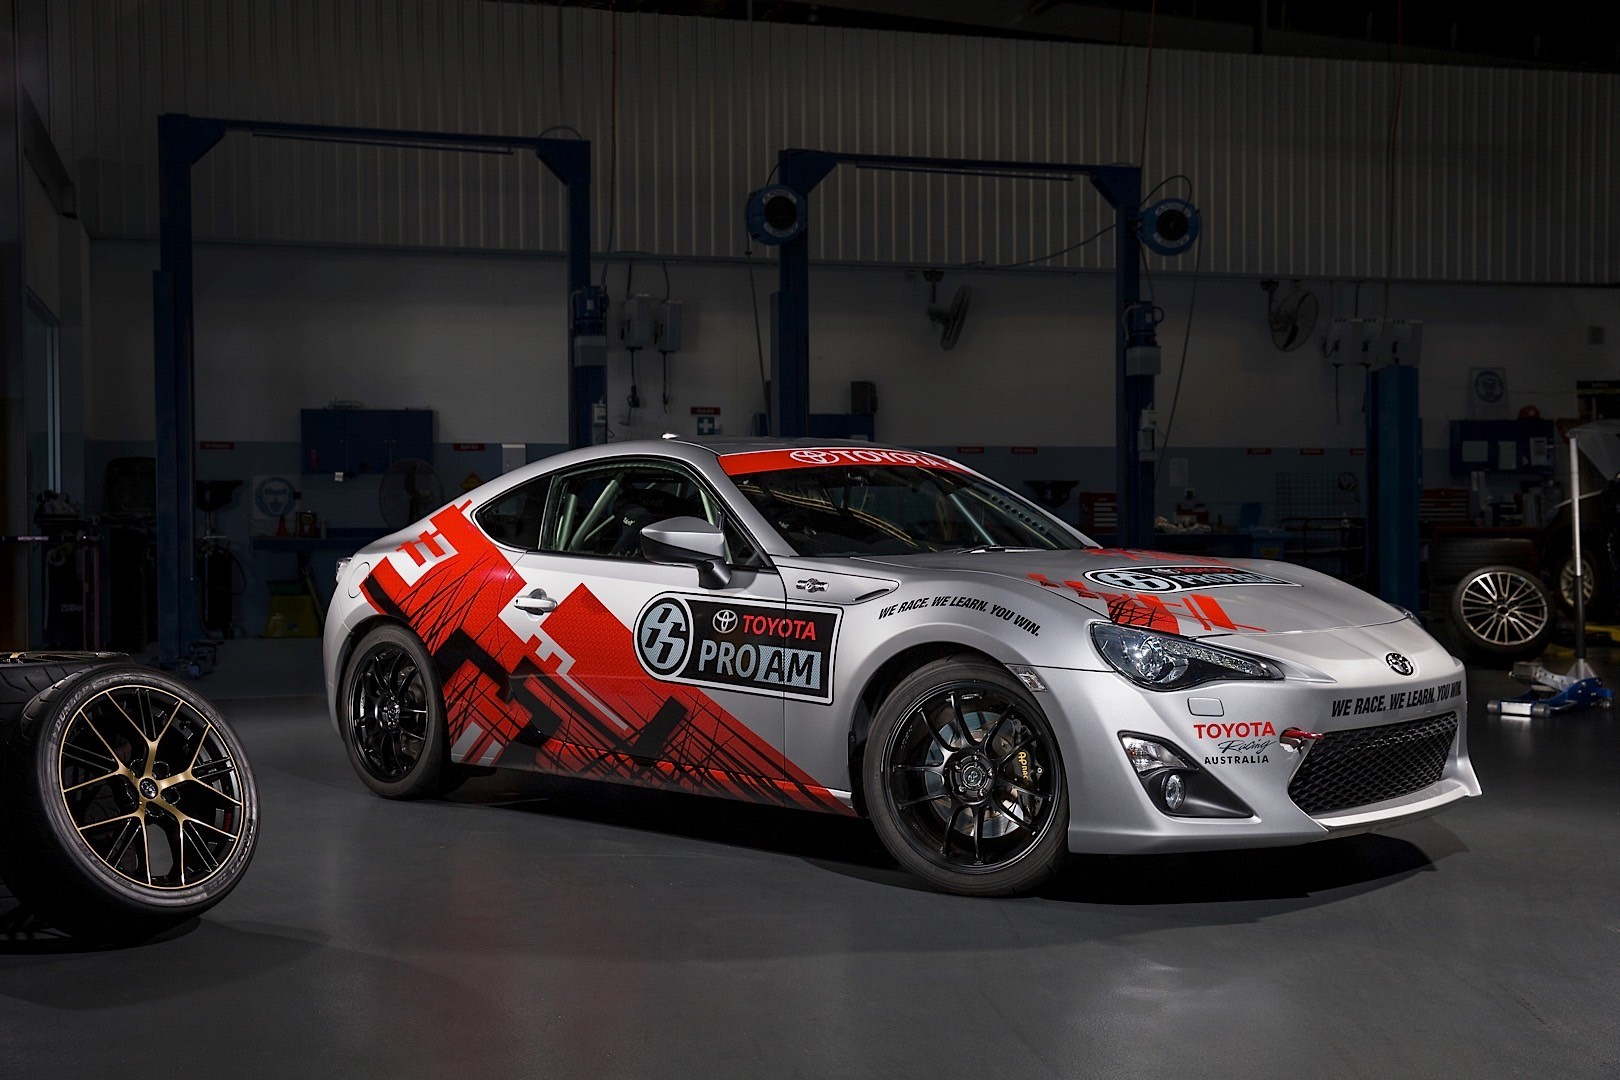 2014 BTCC Launches With Five Toyota Avensis Racecars - autoevolution